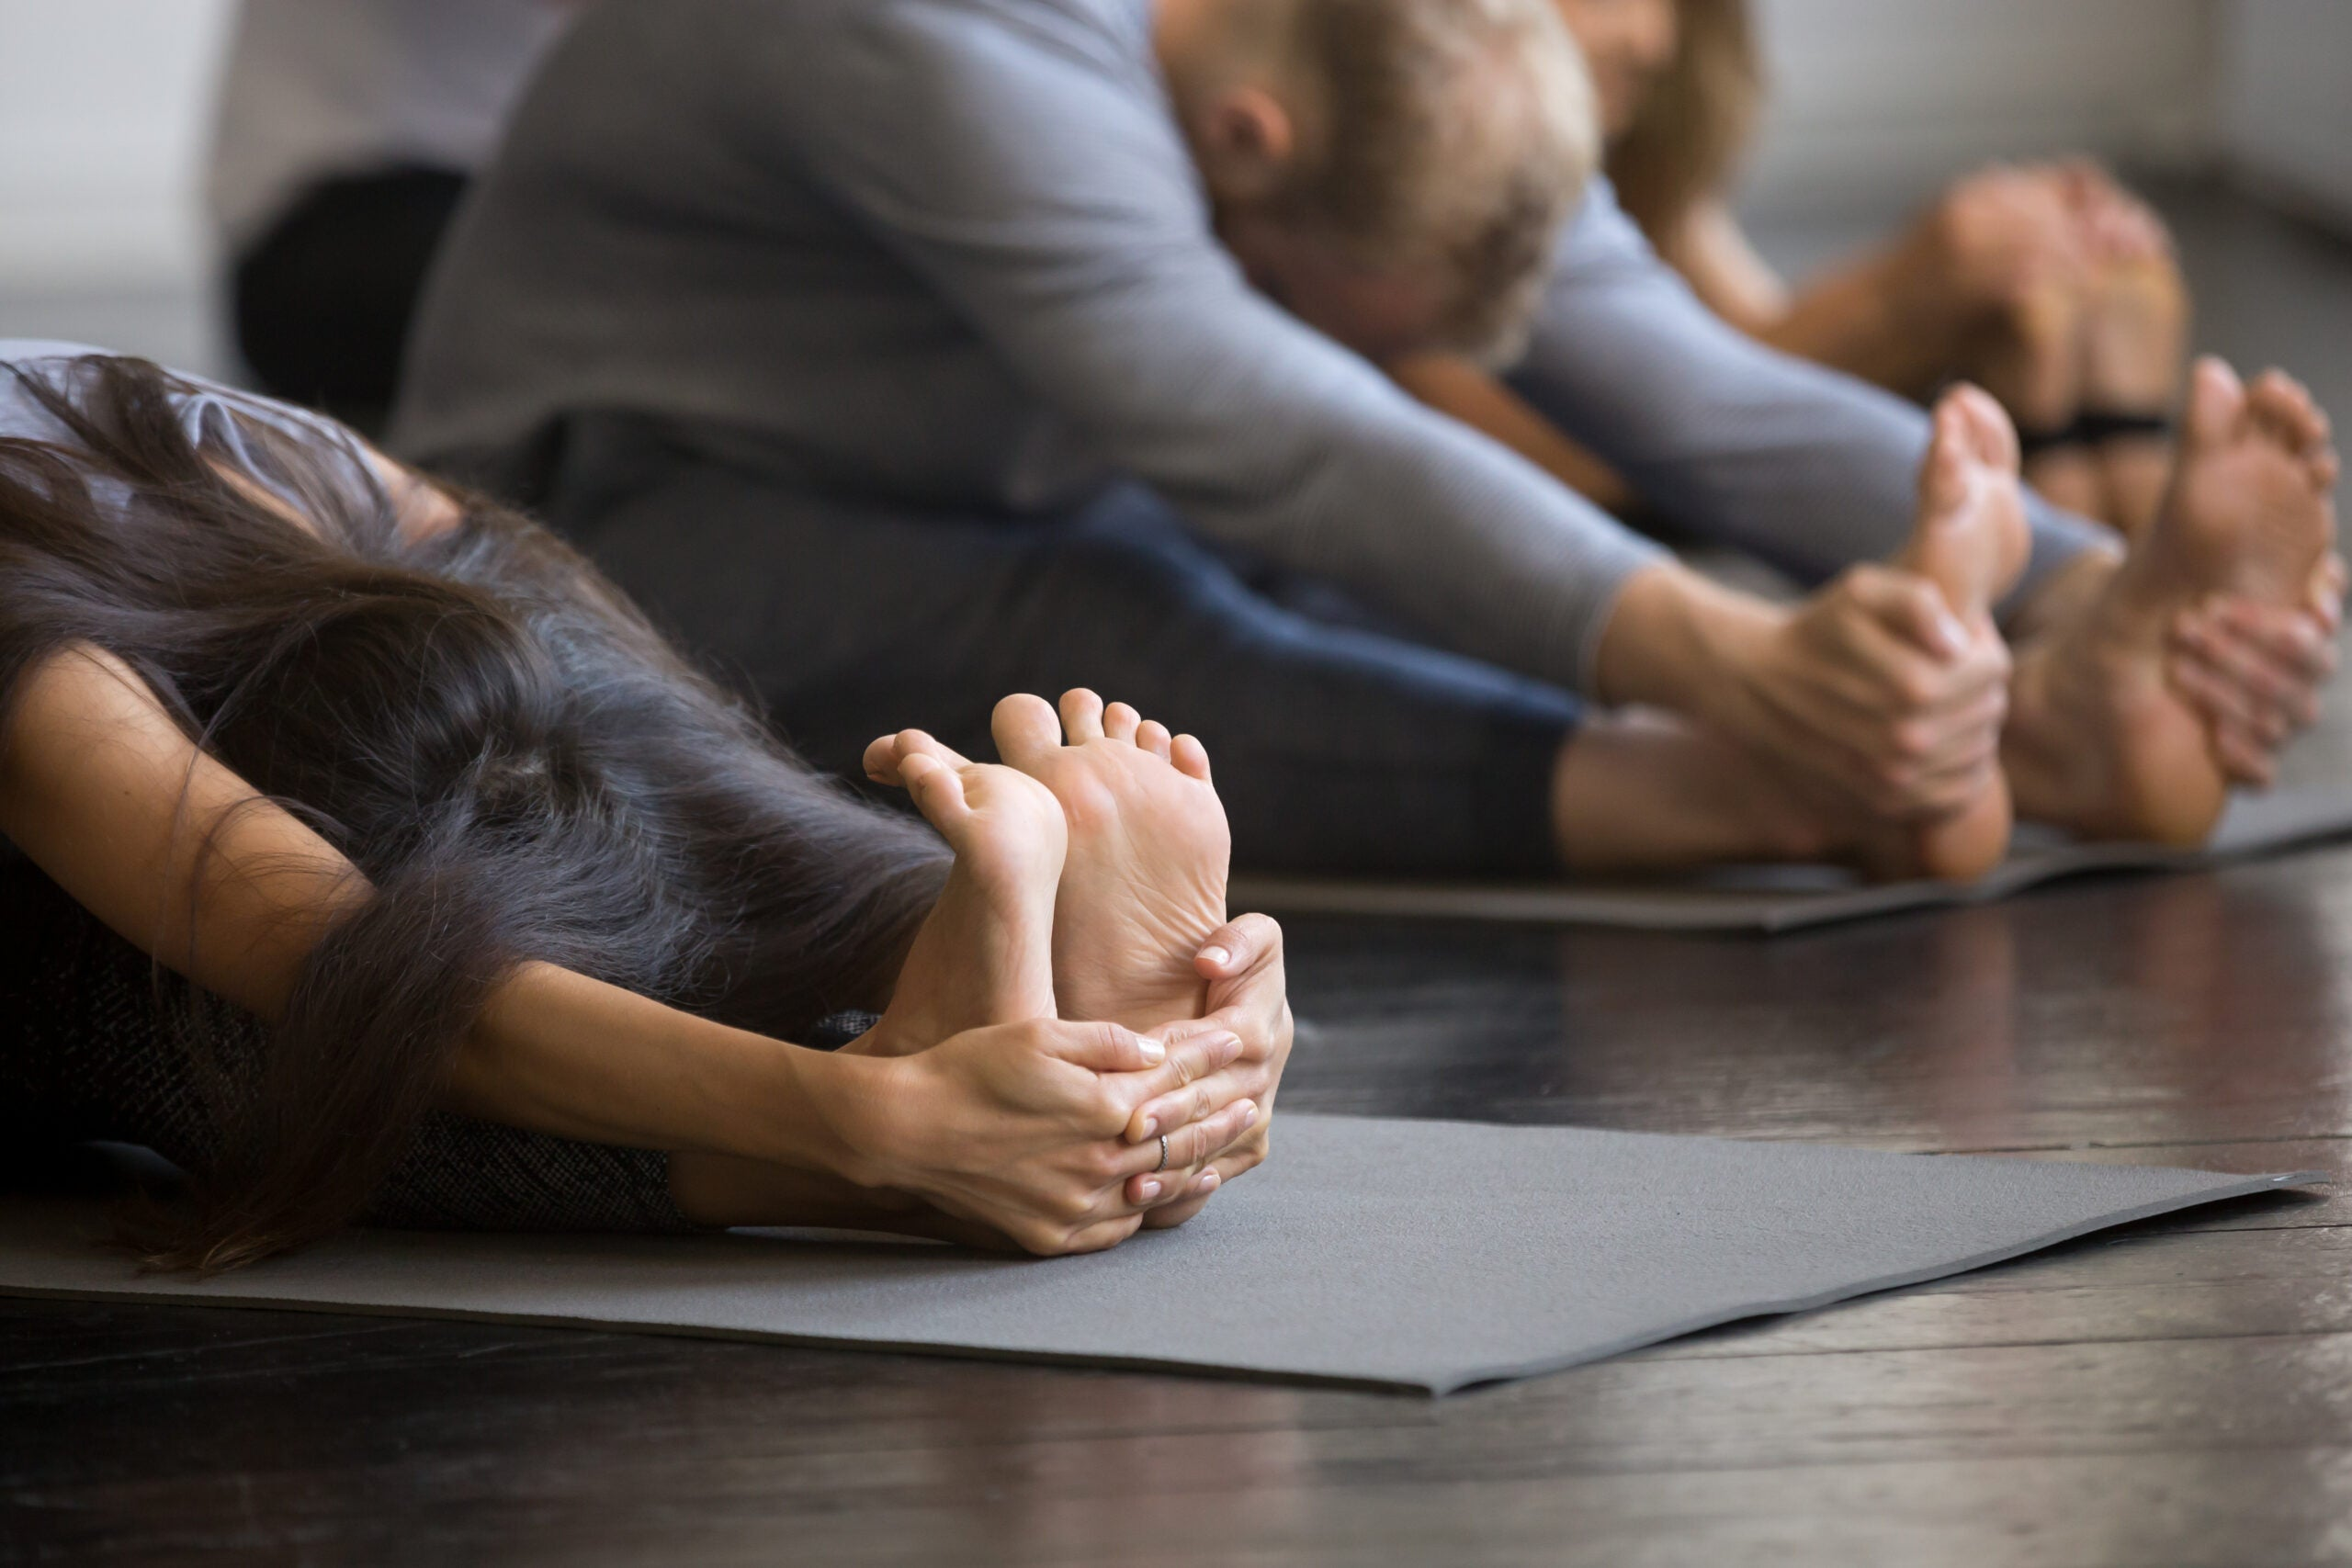 Yoga students hold their stretches in seated forward folds